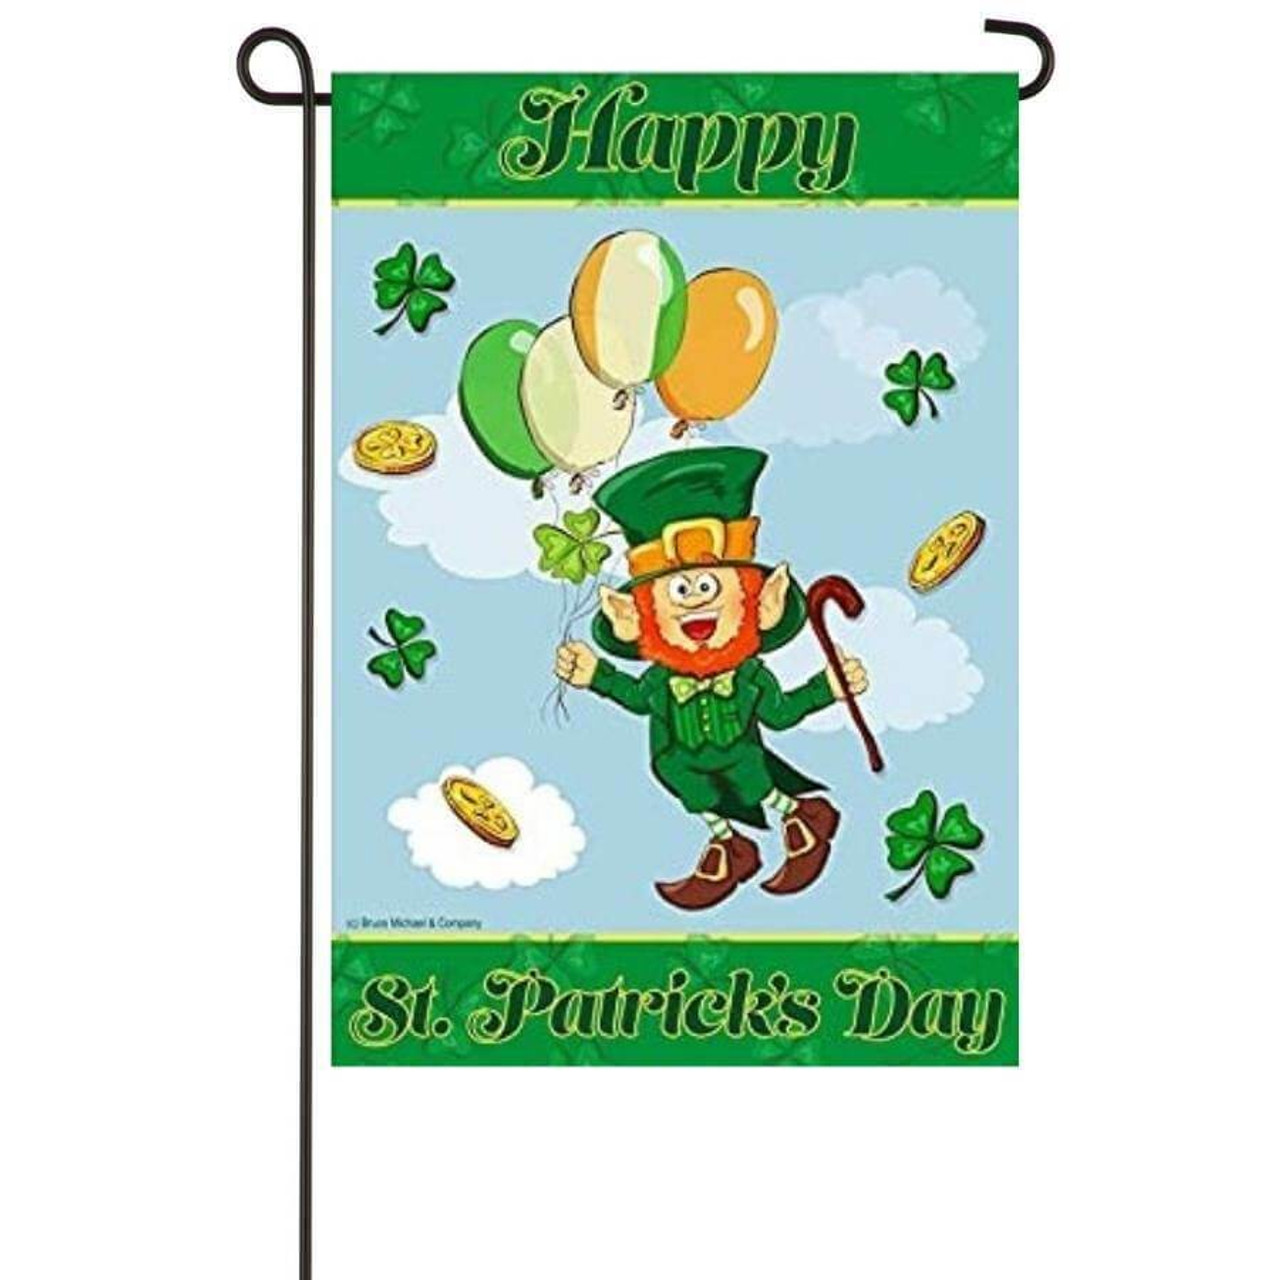 """A St. Patrick's Day garden flag. A leprechaun is in the middle, floating through a blue sky with white clouds. He is holding balloons that are the colors of the Irish flag. Around him are gold coins and green shamrocks. The top and bottom of the flag have a horizontal green stripe. The top says """"Happy,"""" and the bottom says """"St. Patrick's Day."""""""